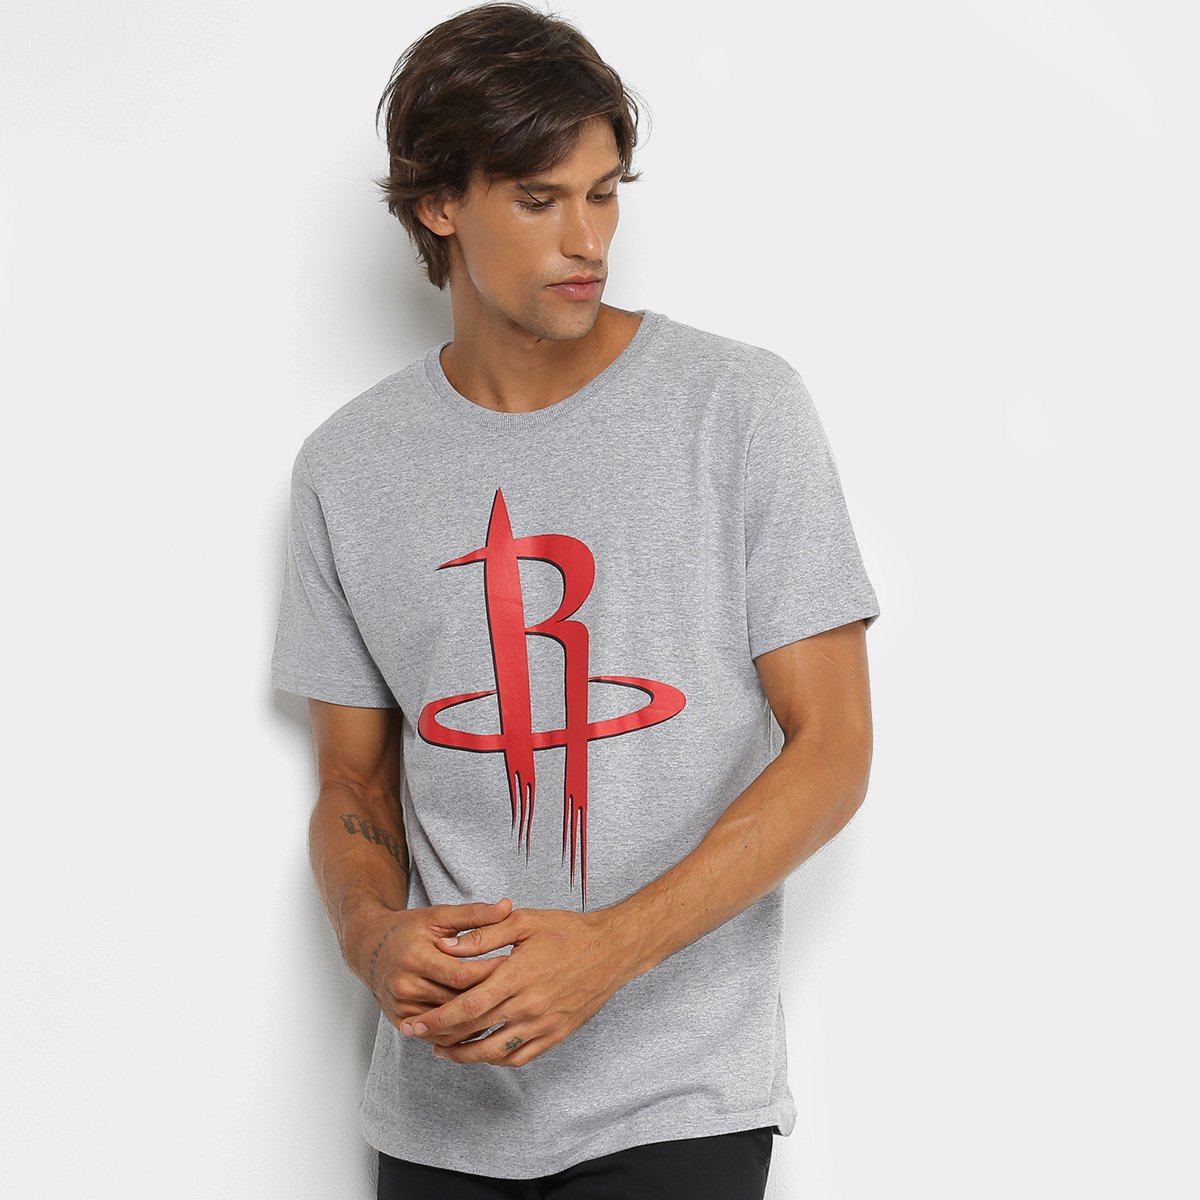 8c544579b Camiseta NBA Houston Rockets Big Logo Masculina - Compre Agora ...